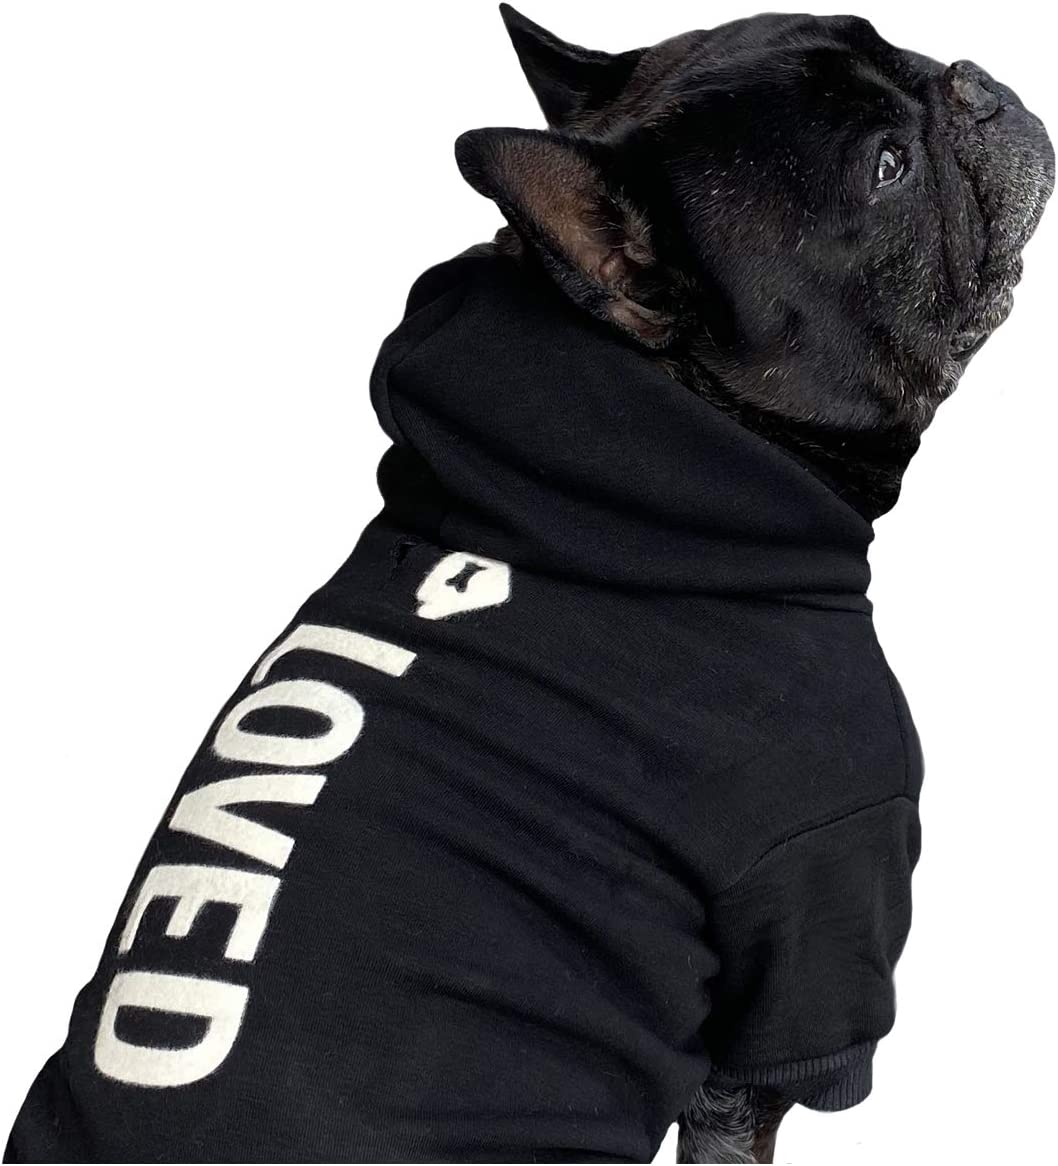 HOUSE DOGGE Loved Cash special price Hoodie D.O.G. favorite Small